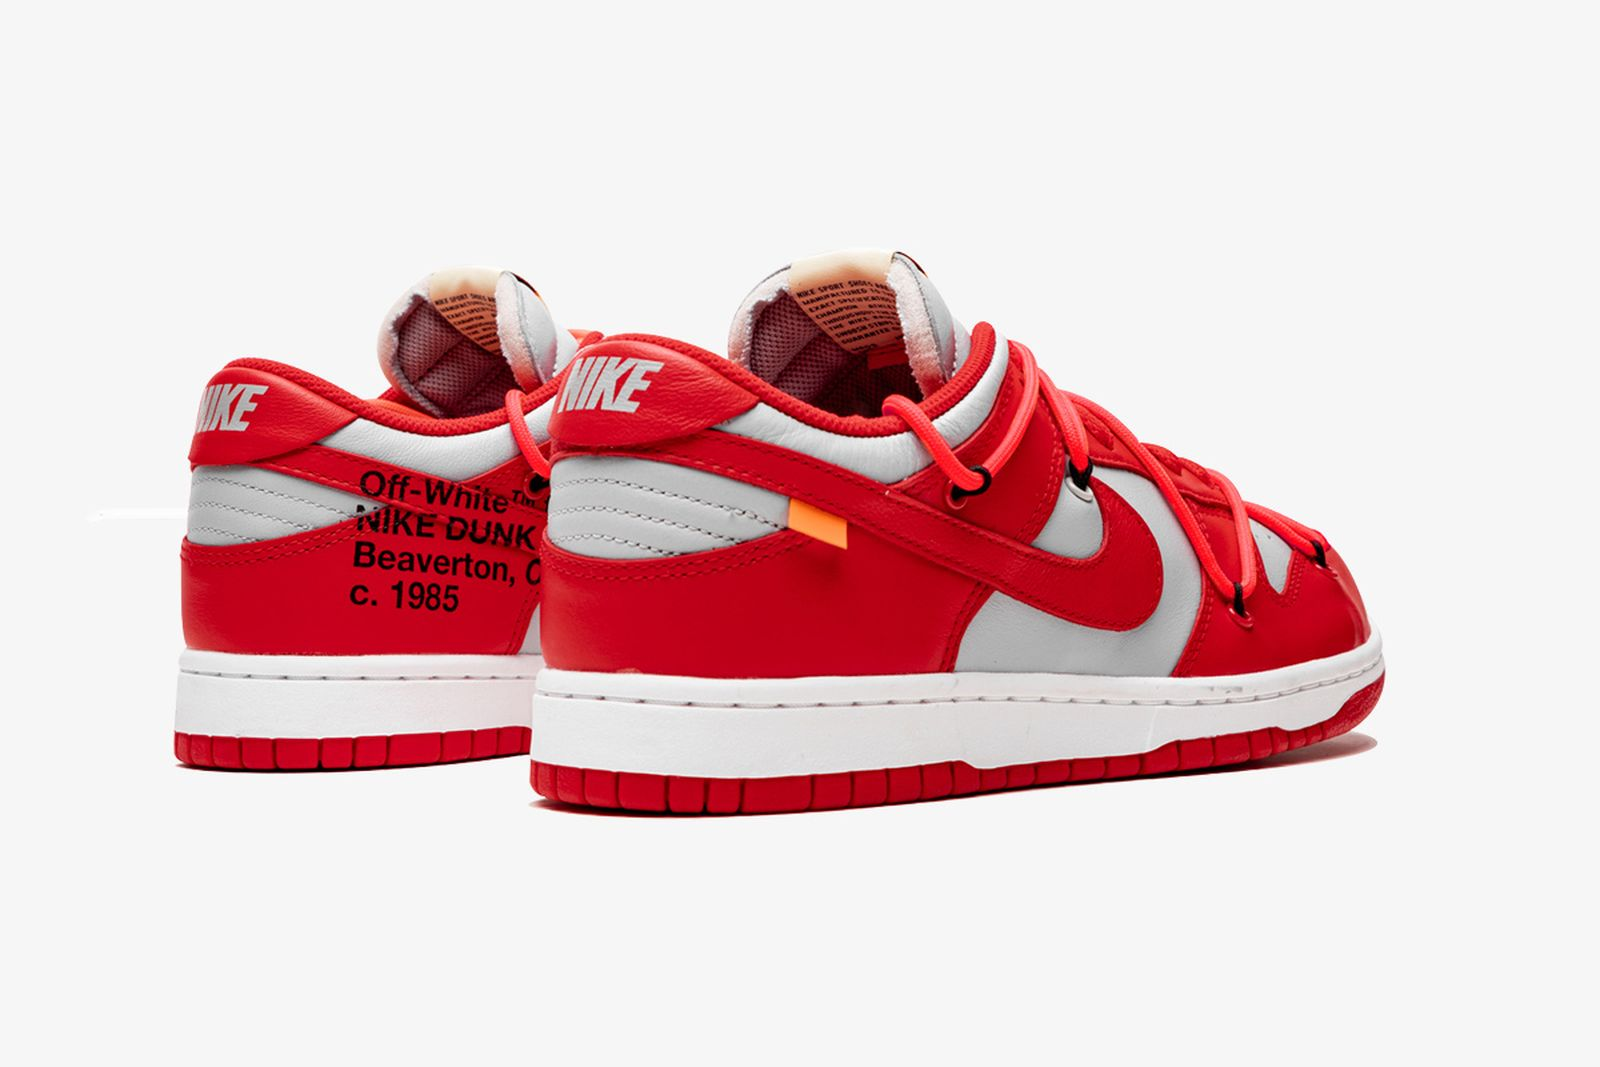 off white nike dunk low university red release date price OFF-WHITE c/o Virgil Abloh